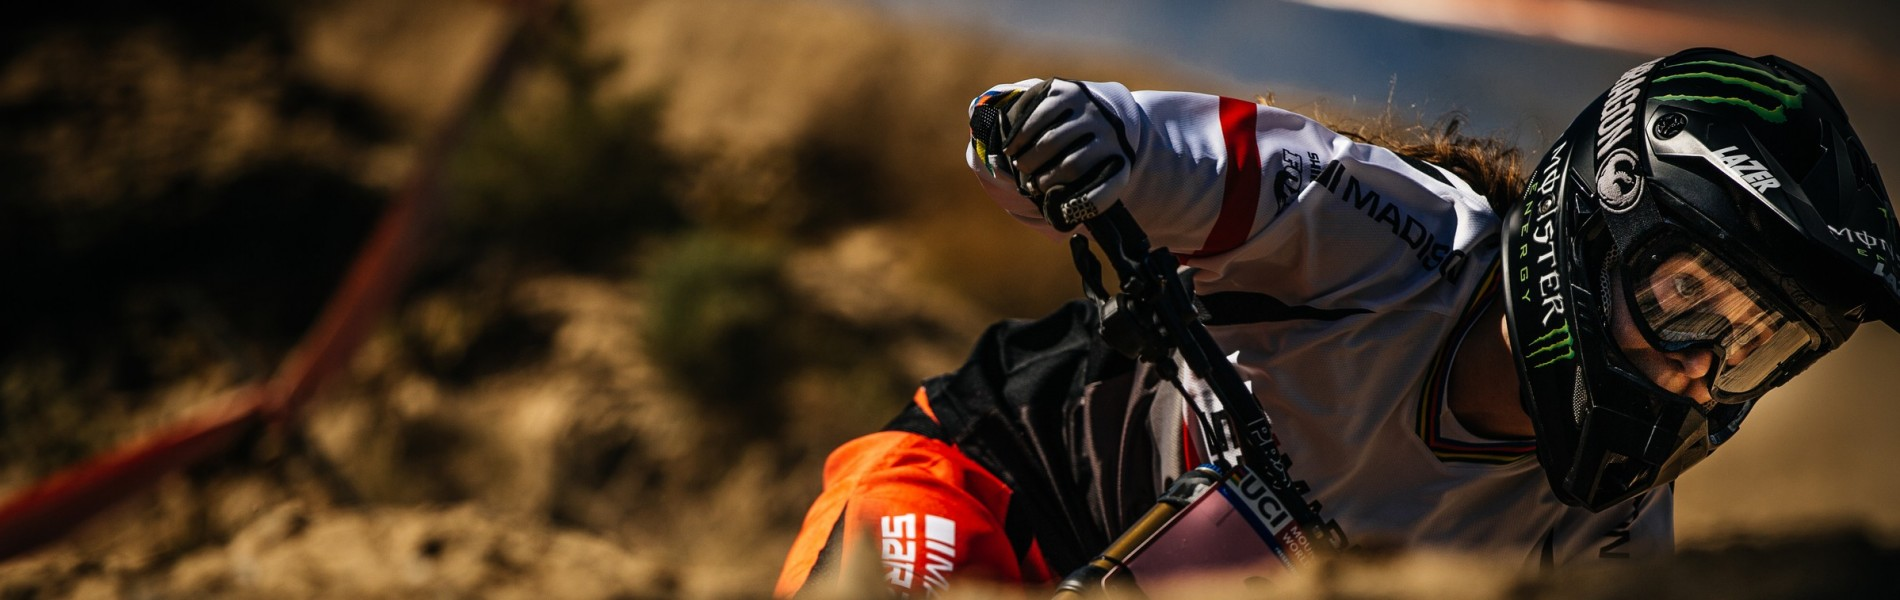 images from UCI world Cup Andorra